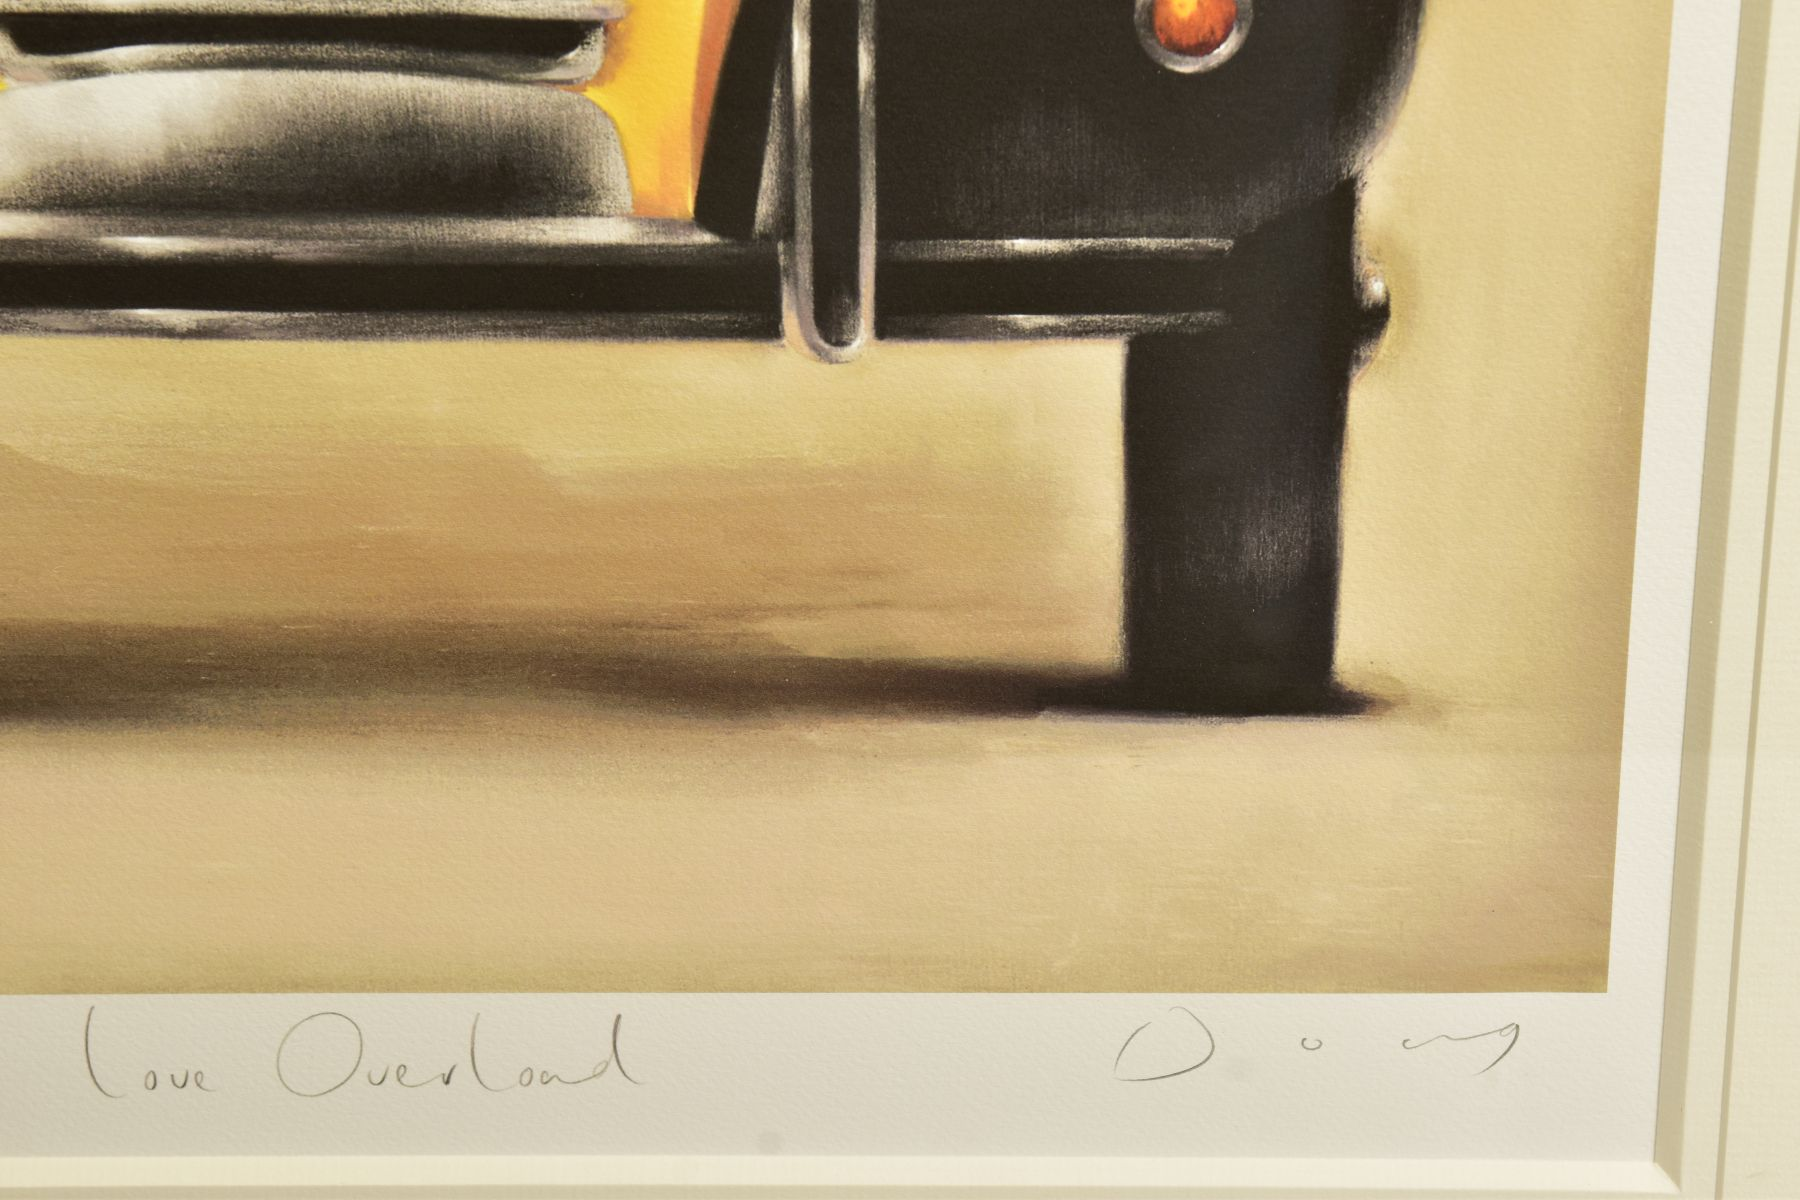 DOUG HYDE (BRITISH 1972) ' LOVE OVERLOAD', a boy and his pets in a Citroen 2CV, limited edition - Image 3 of 12